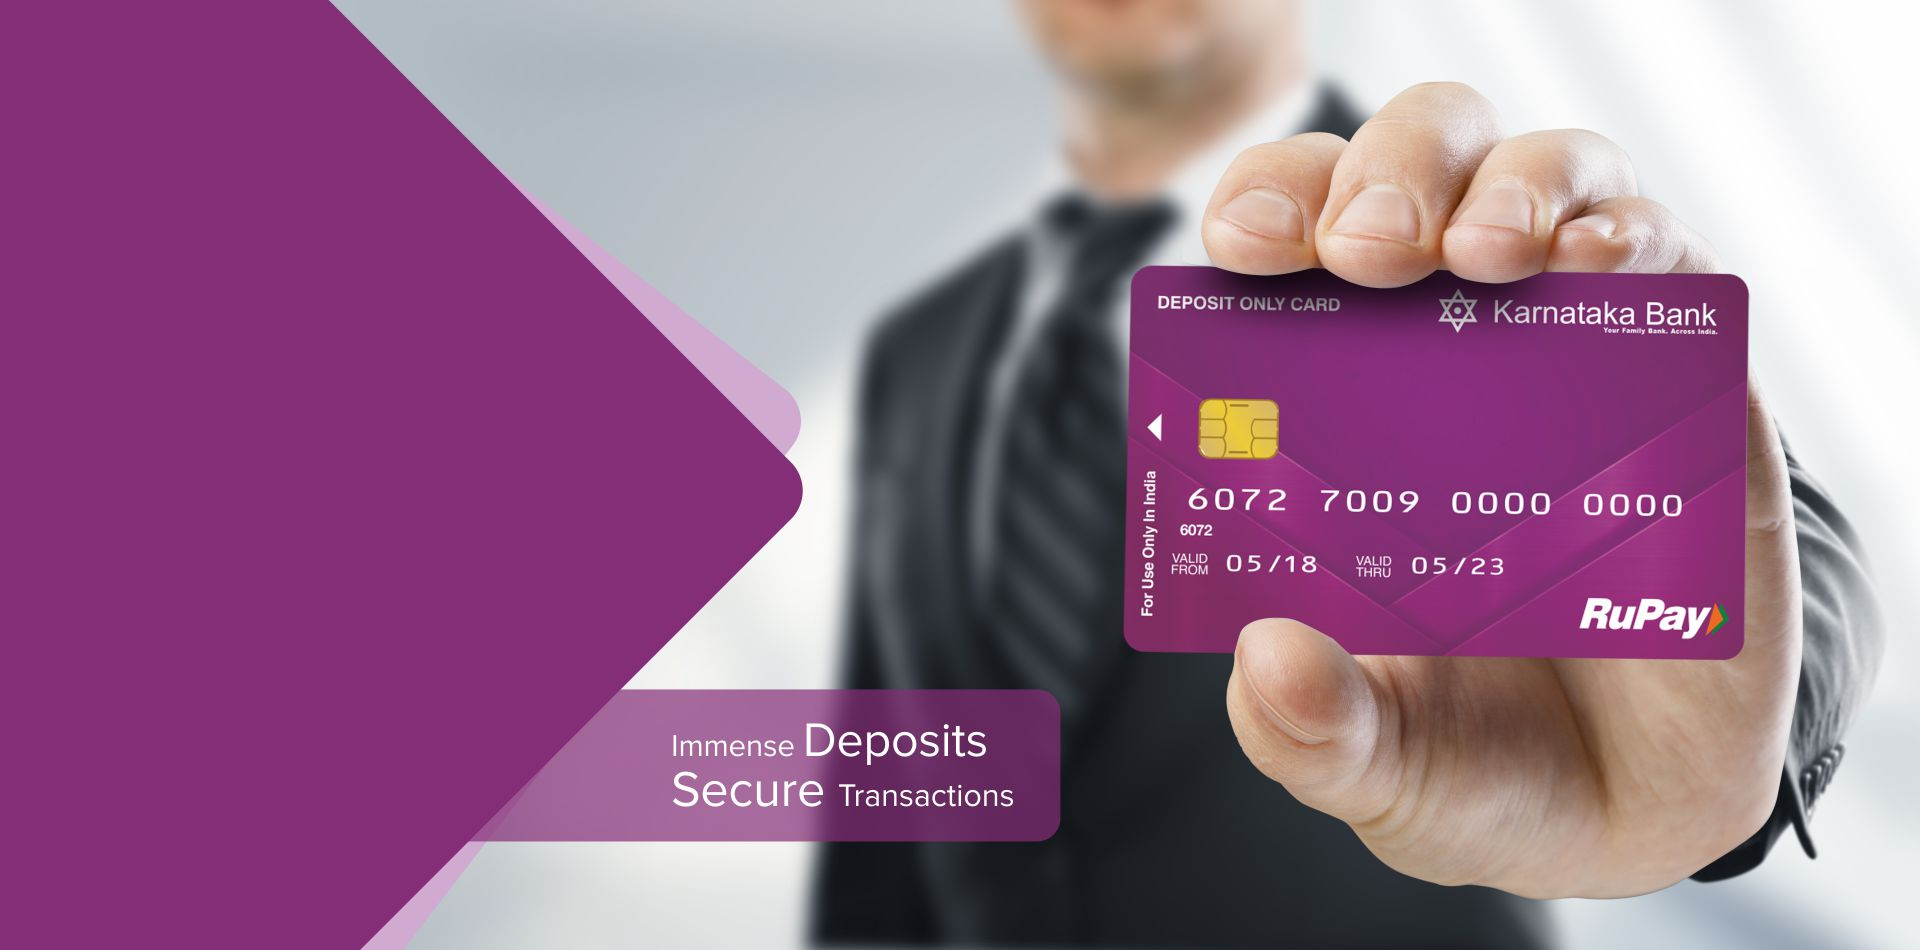 DEPOSIT ONLY CARD